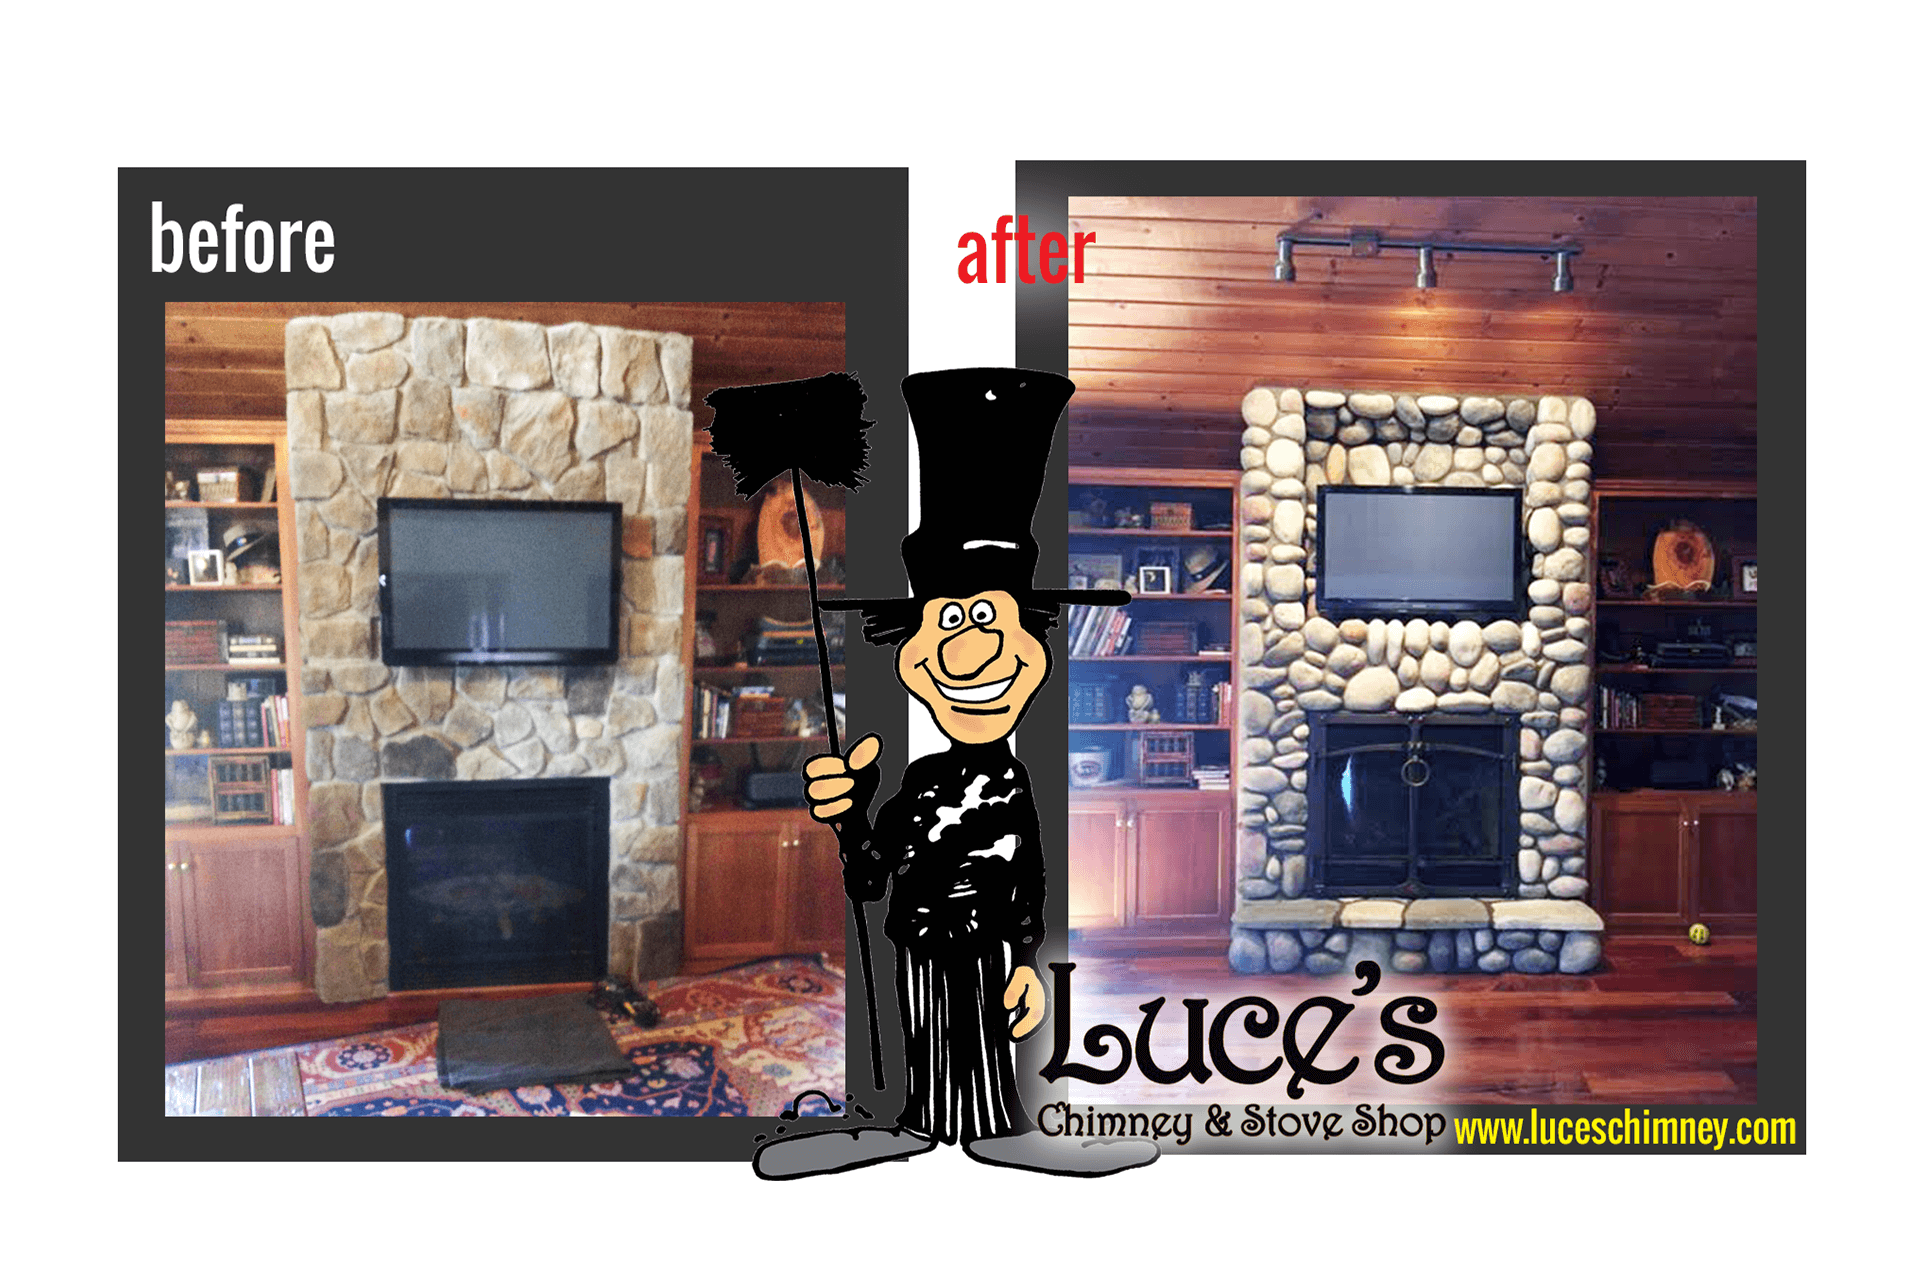 Custom stone fireplace remodeling by Luce's Chimney & Stove Shop.